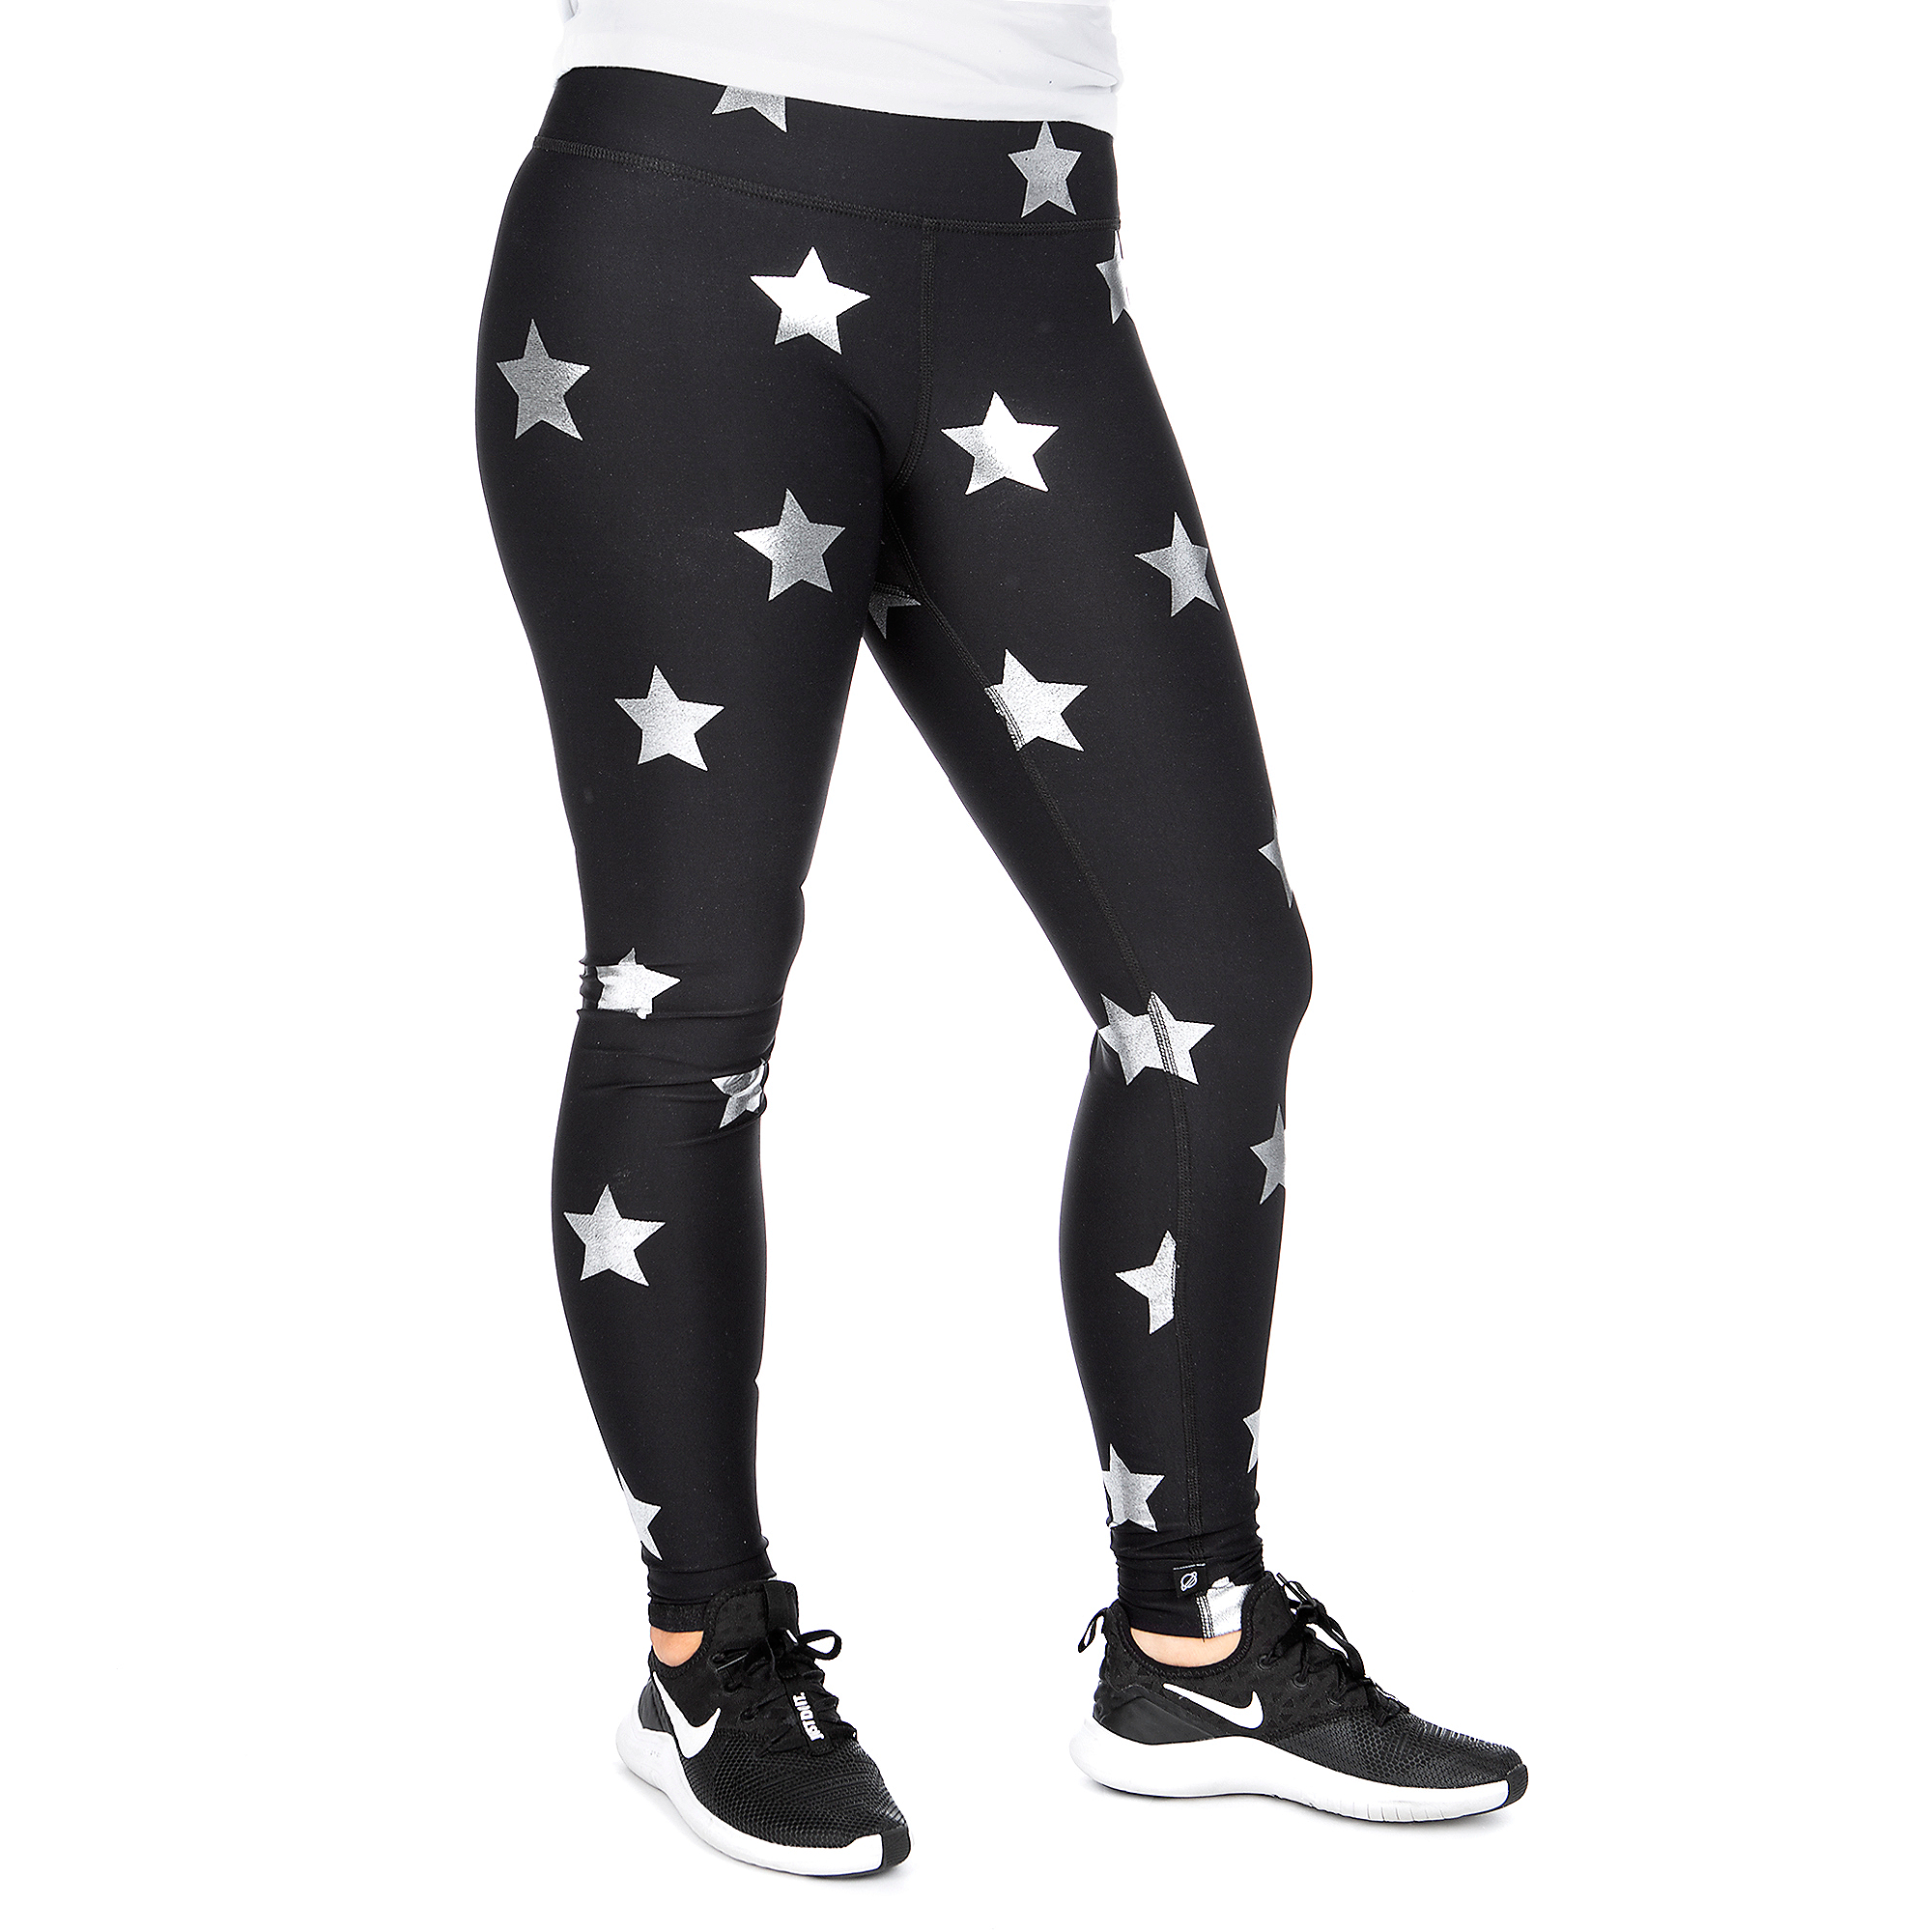 Studio Terez Black Star Silver Foil Legging